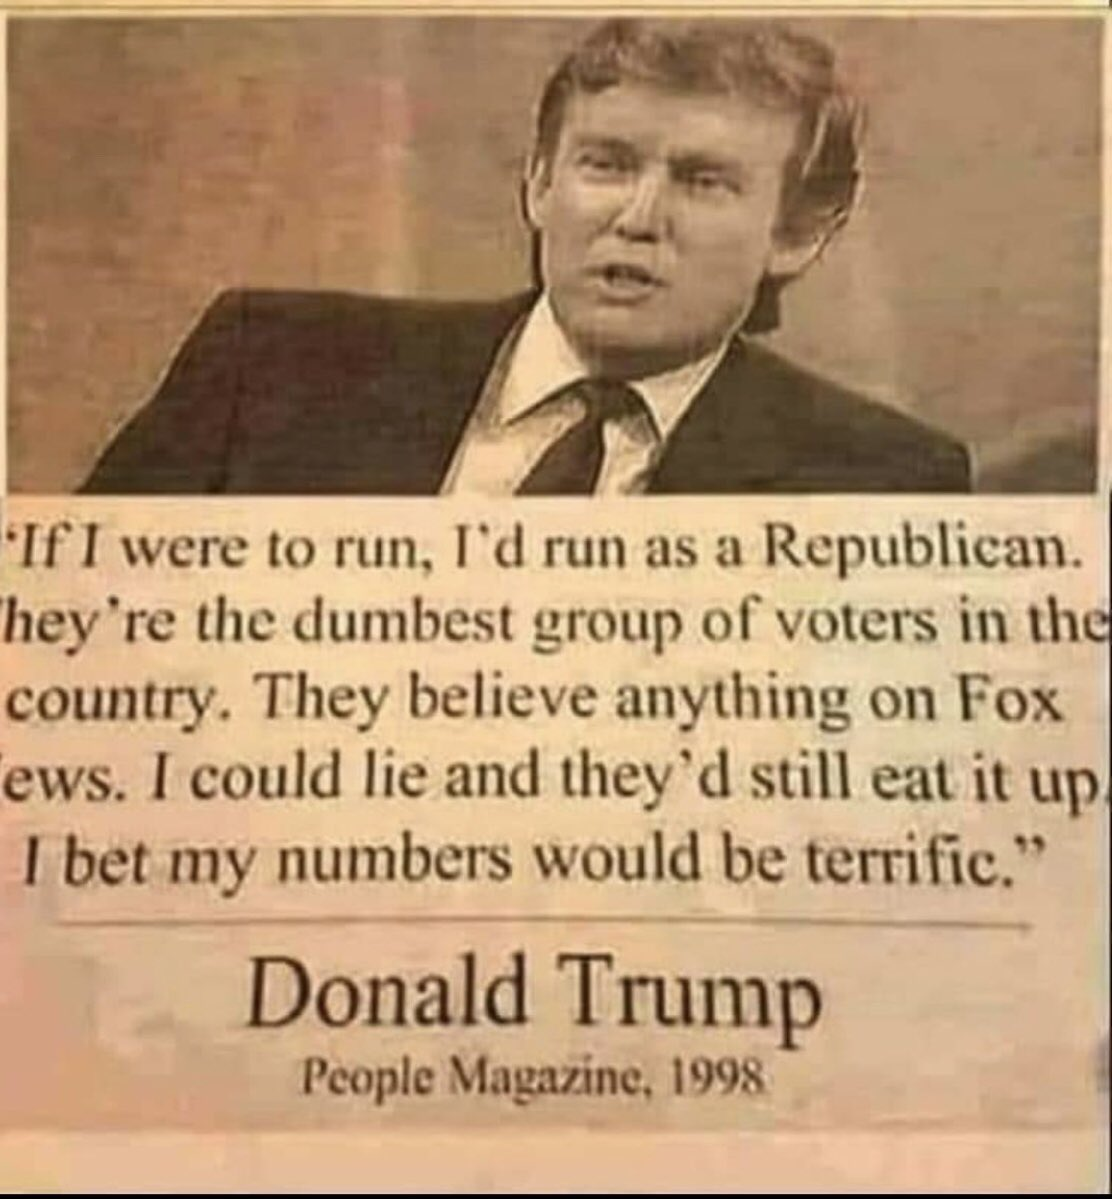 Here's a reminder to all you tRump #Republicans. #BeGone #ByeByeTrump